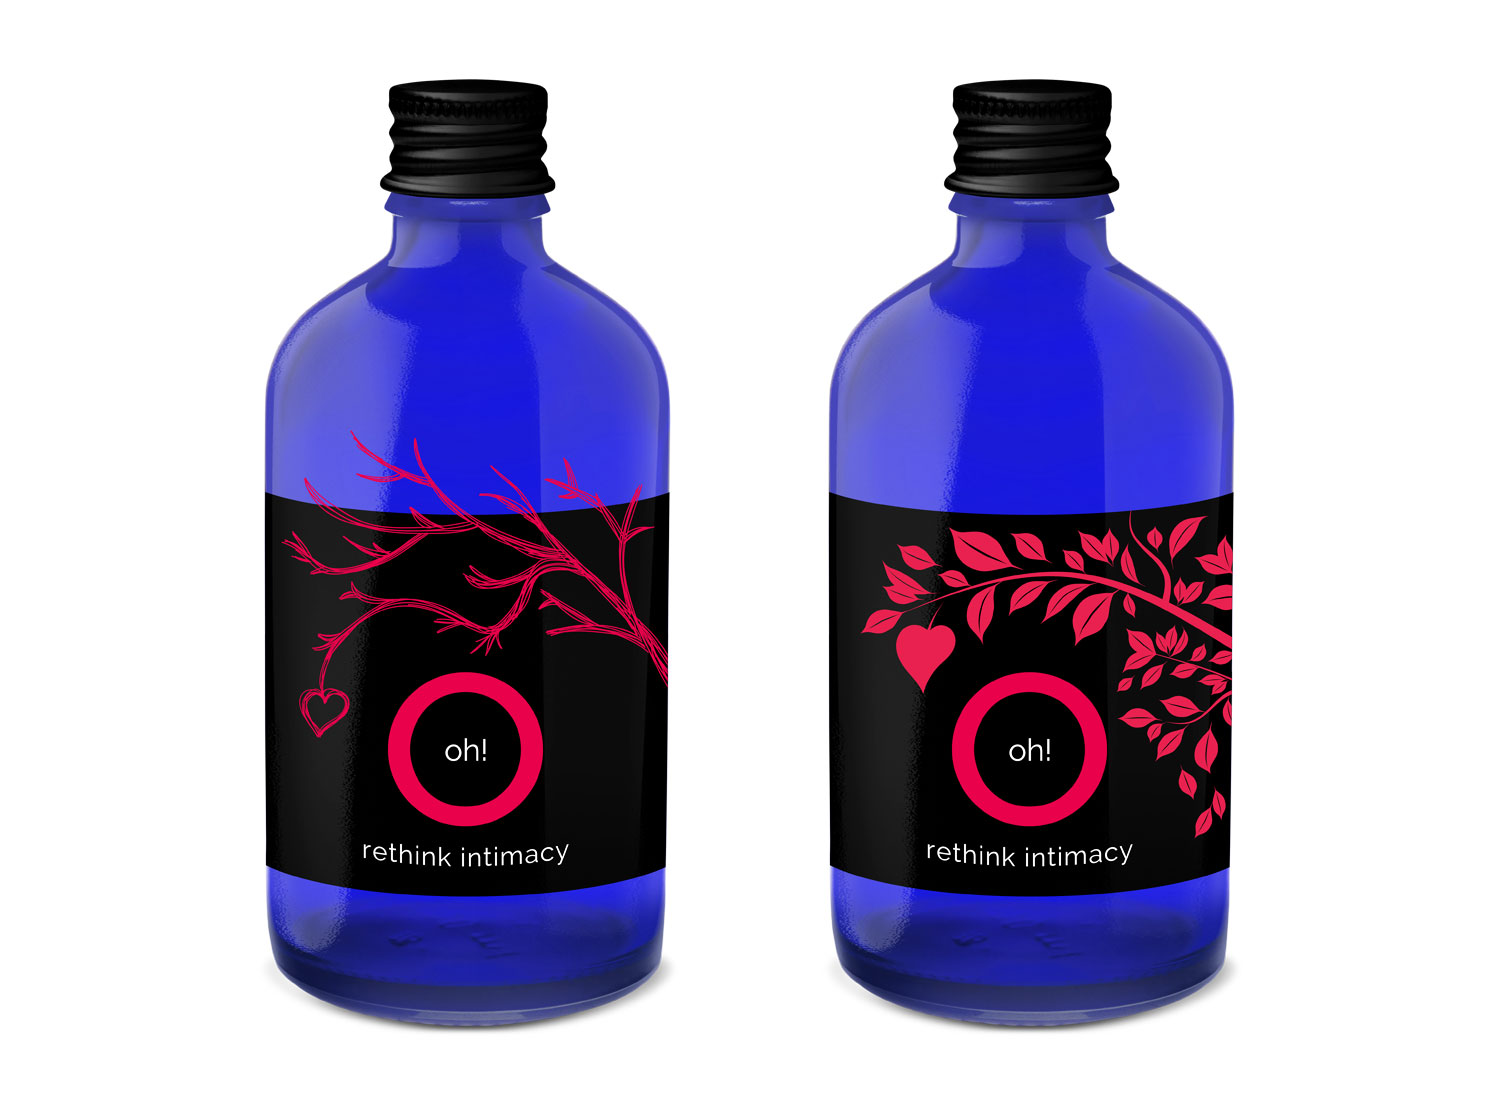 Micro bottle label design with hand-tied tag